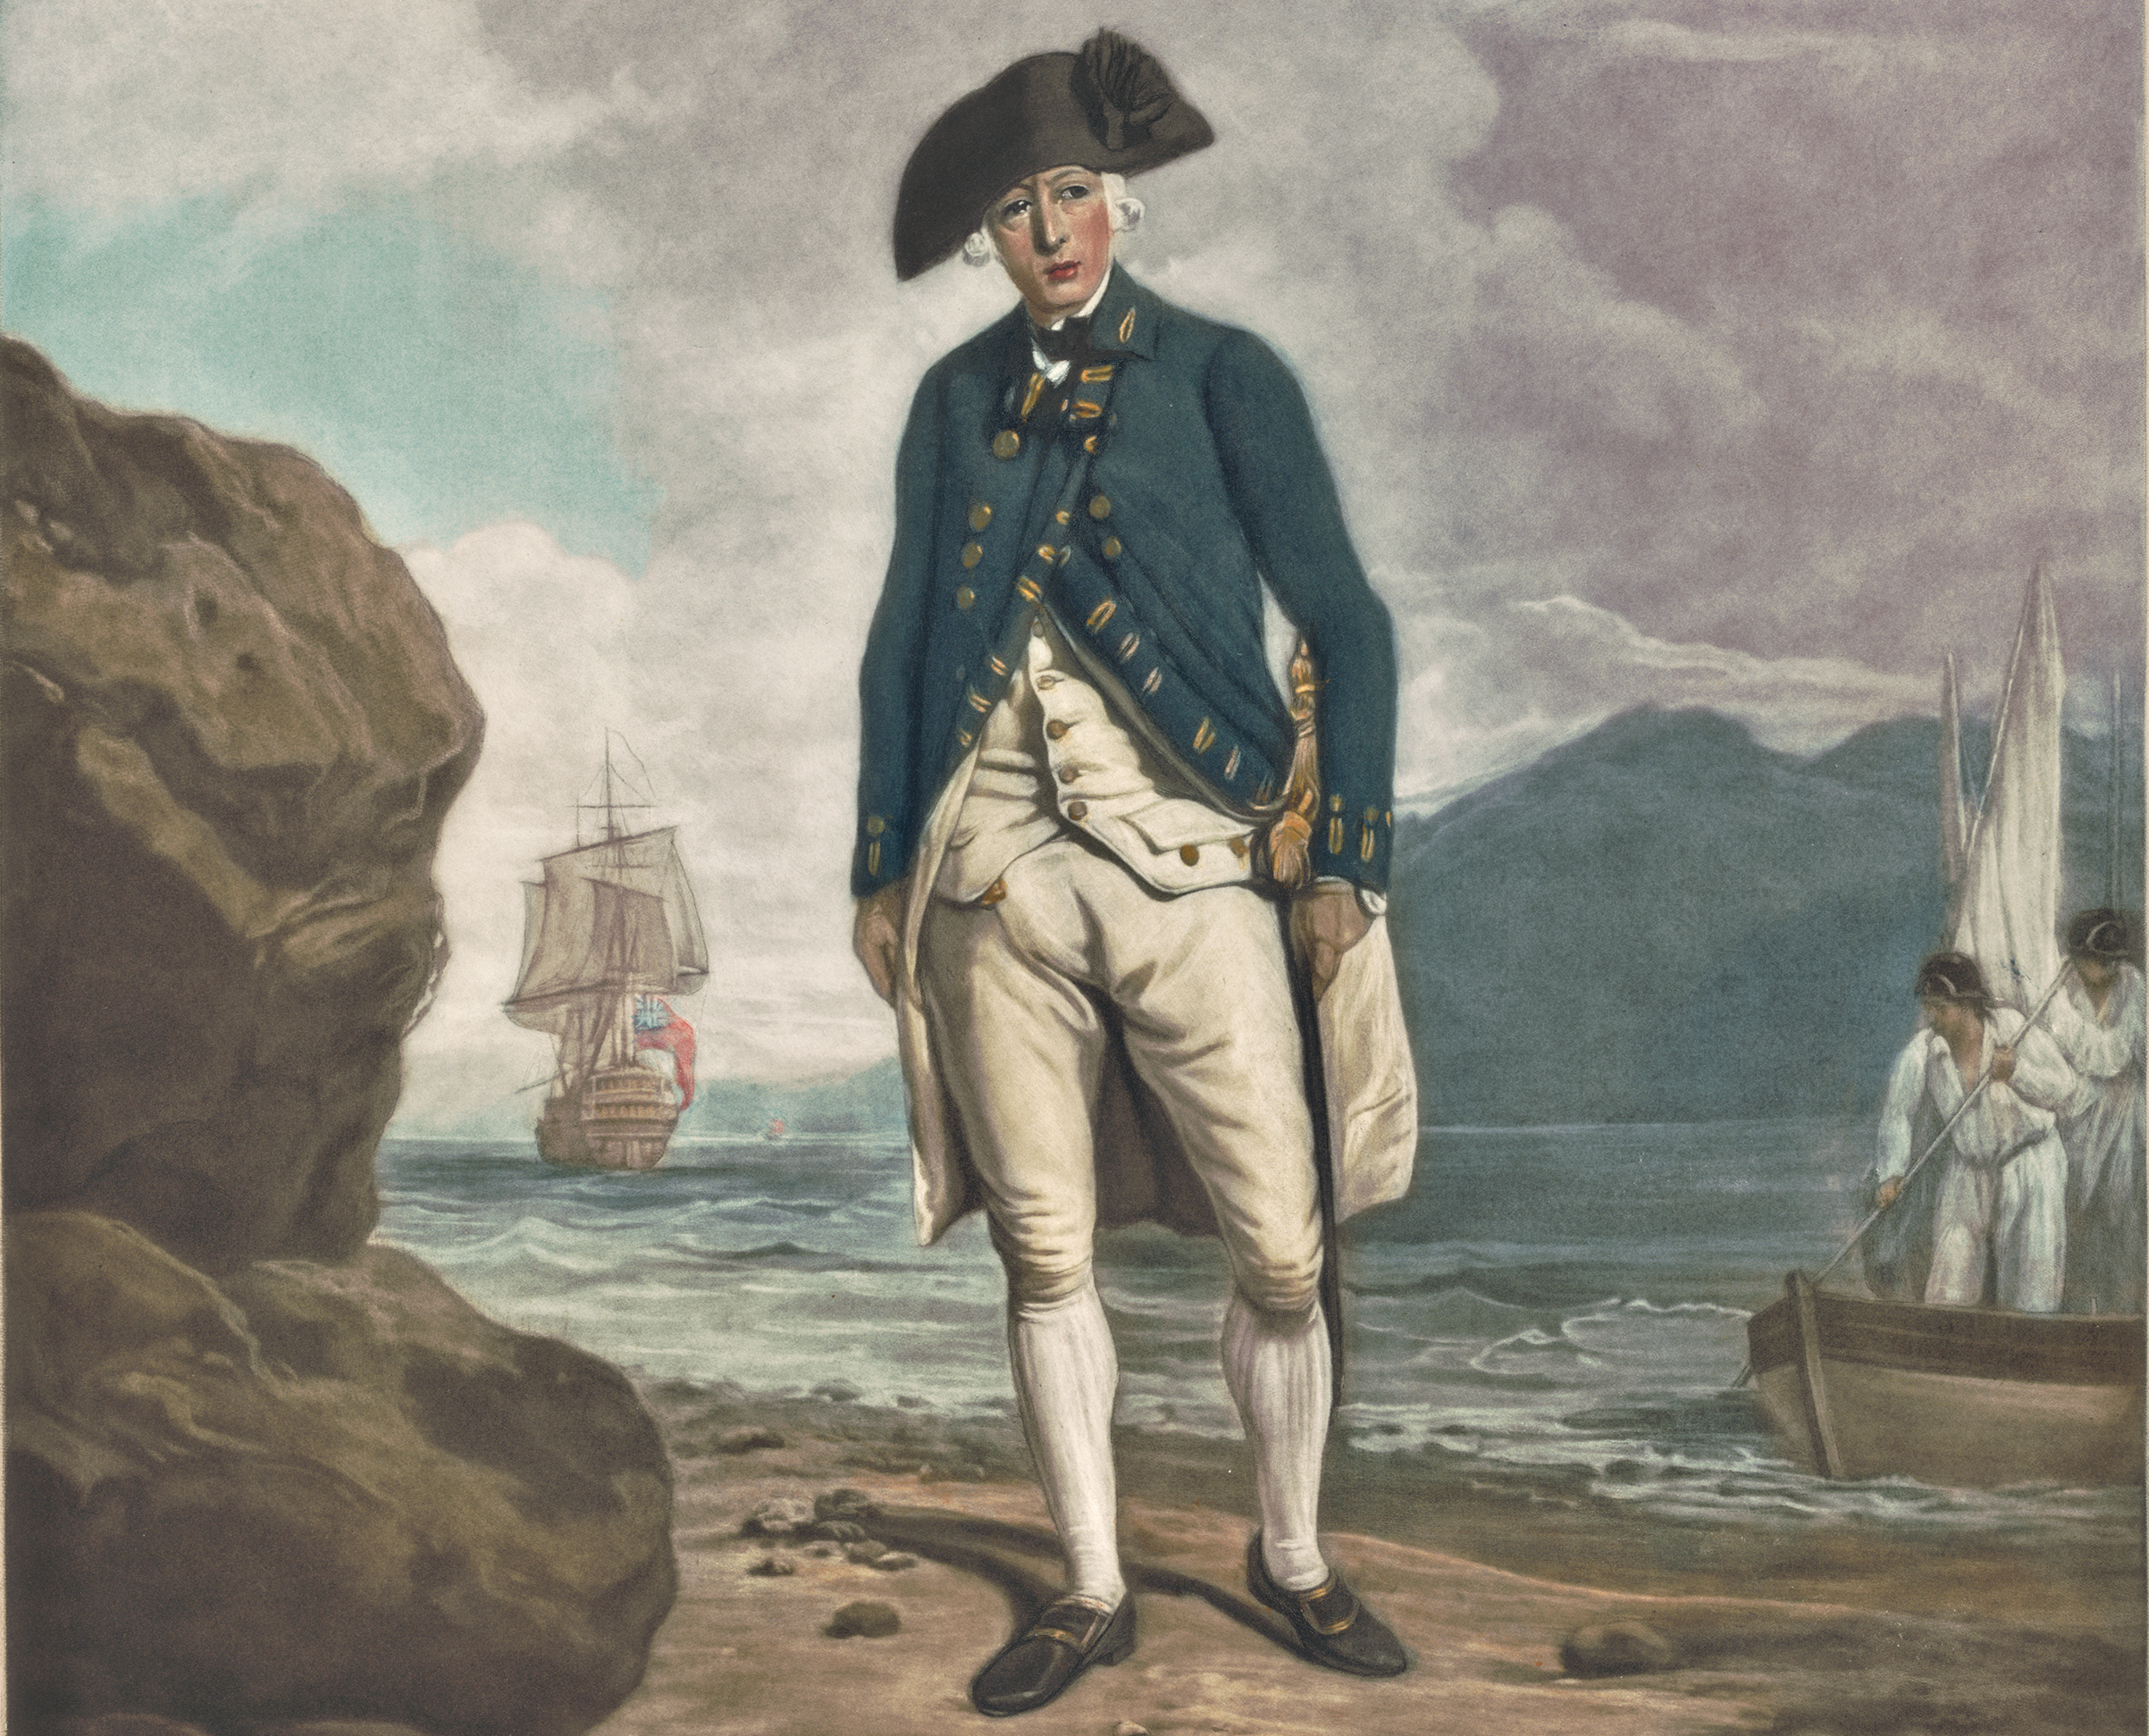 Portrait of man in uniform with black hat, standing on beach with ship and  small